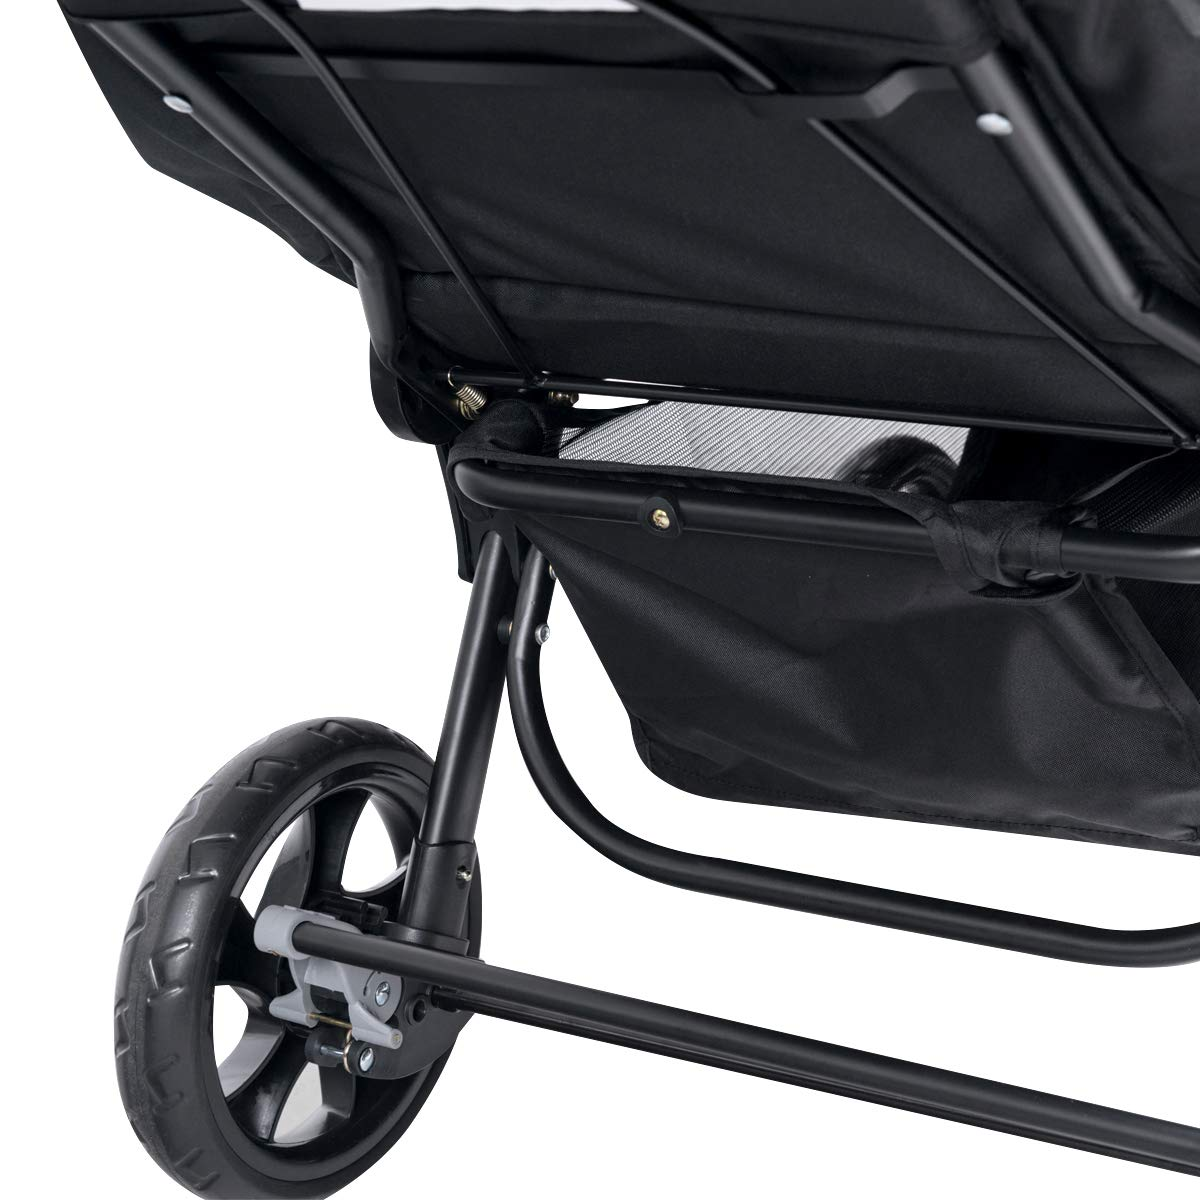 Going Shopping Detachable Canopy Foldable Pushchair for Traveling Hanging Out GYMAX Double Seat Stroller with Adjustable Push Handle and Foot Rest